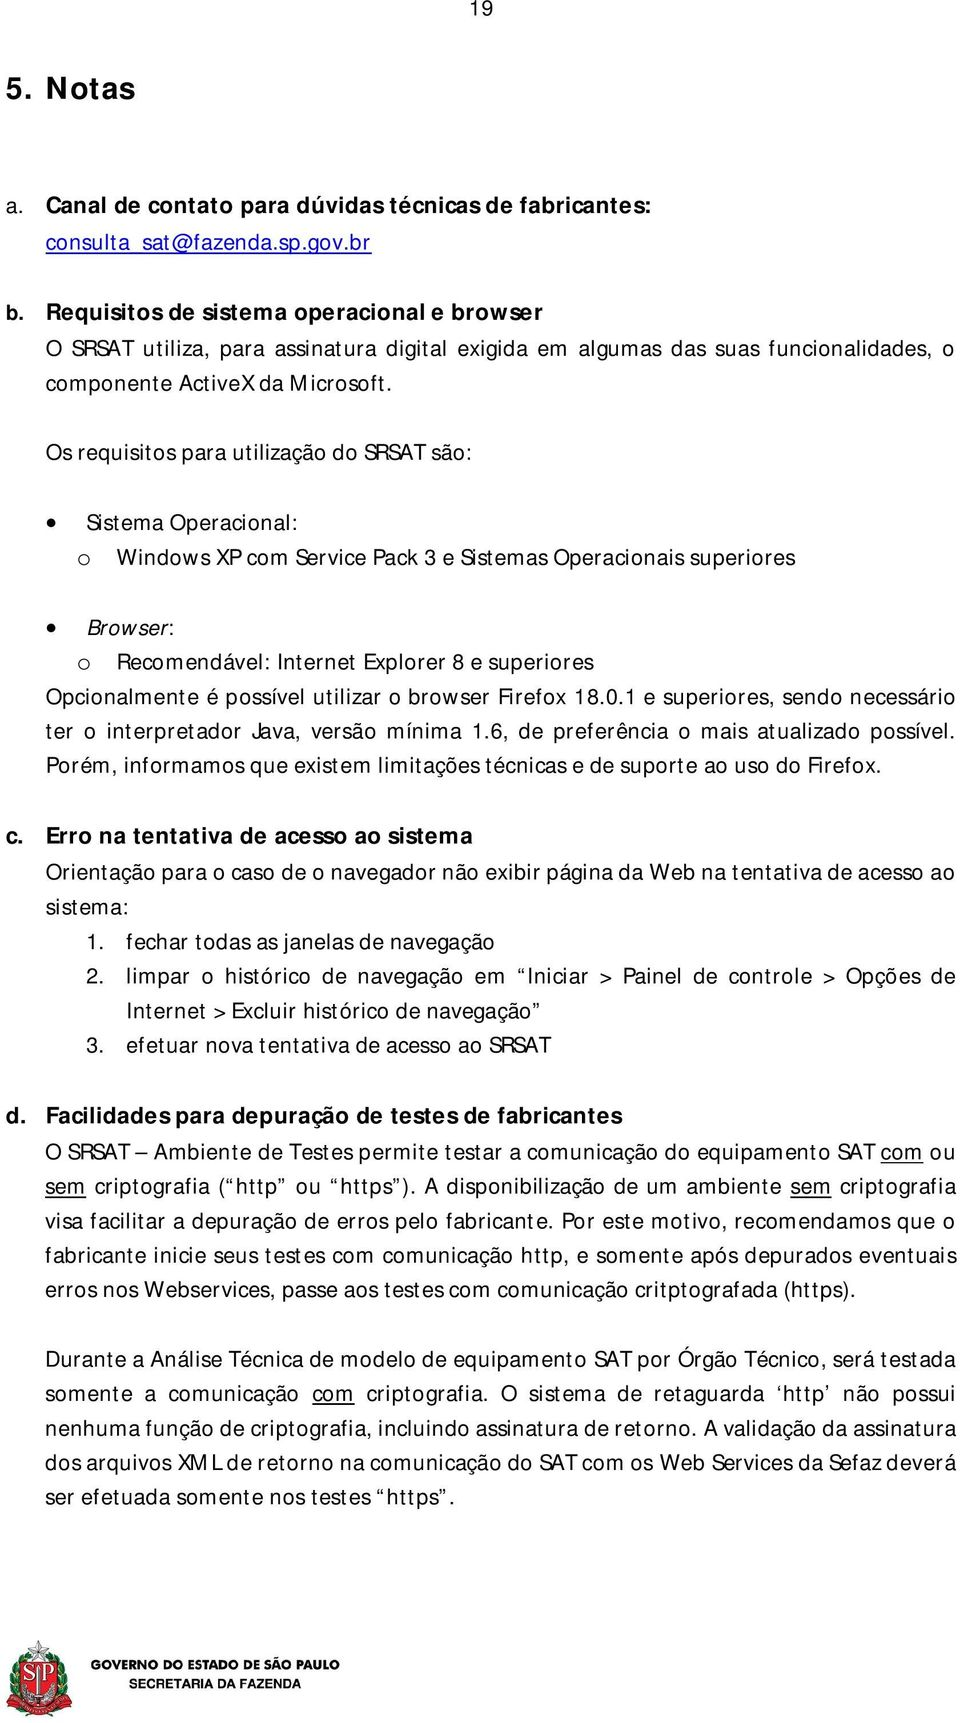 Os requisitos para utilização do SRSAT são: Sistema Operacional: o Windows XP com Service Pack 3 e Sistemas Operacionais superiores Browser: o Recomendável: Internet Explorer 8 e superiores